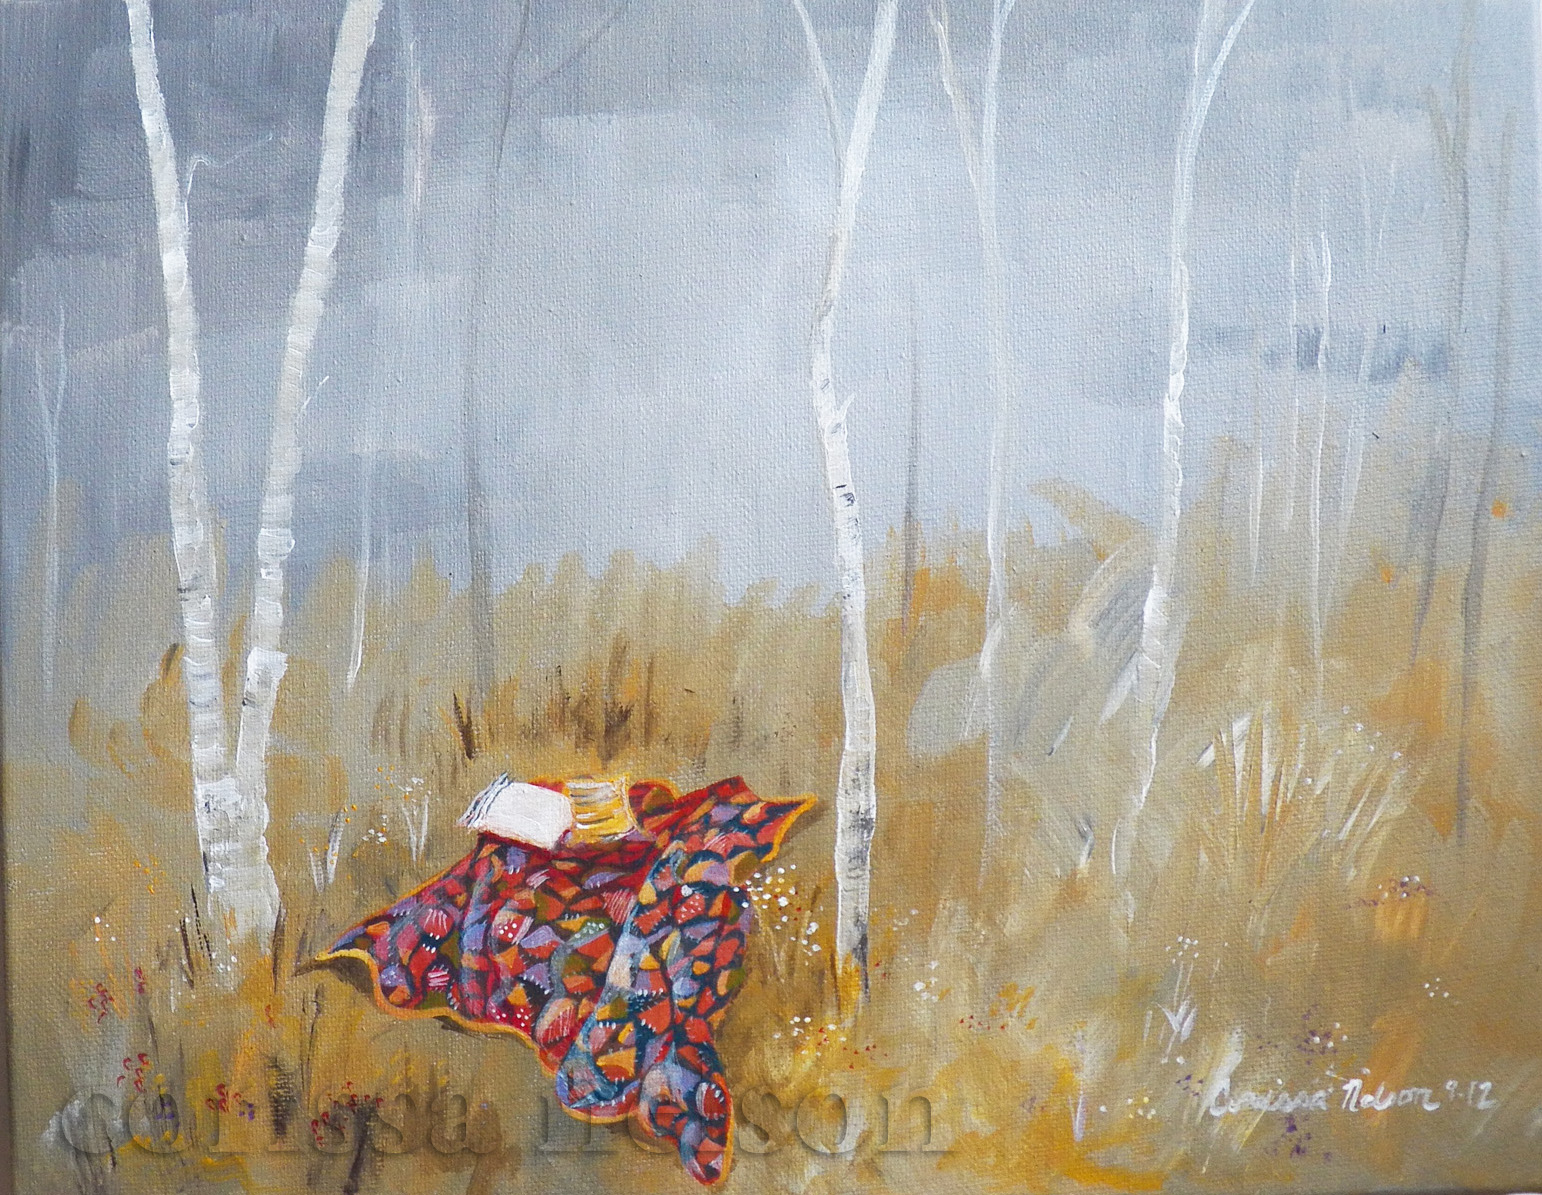 Camping Among the Birch Trees with a Crazy Quilt